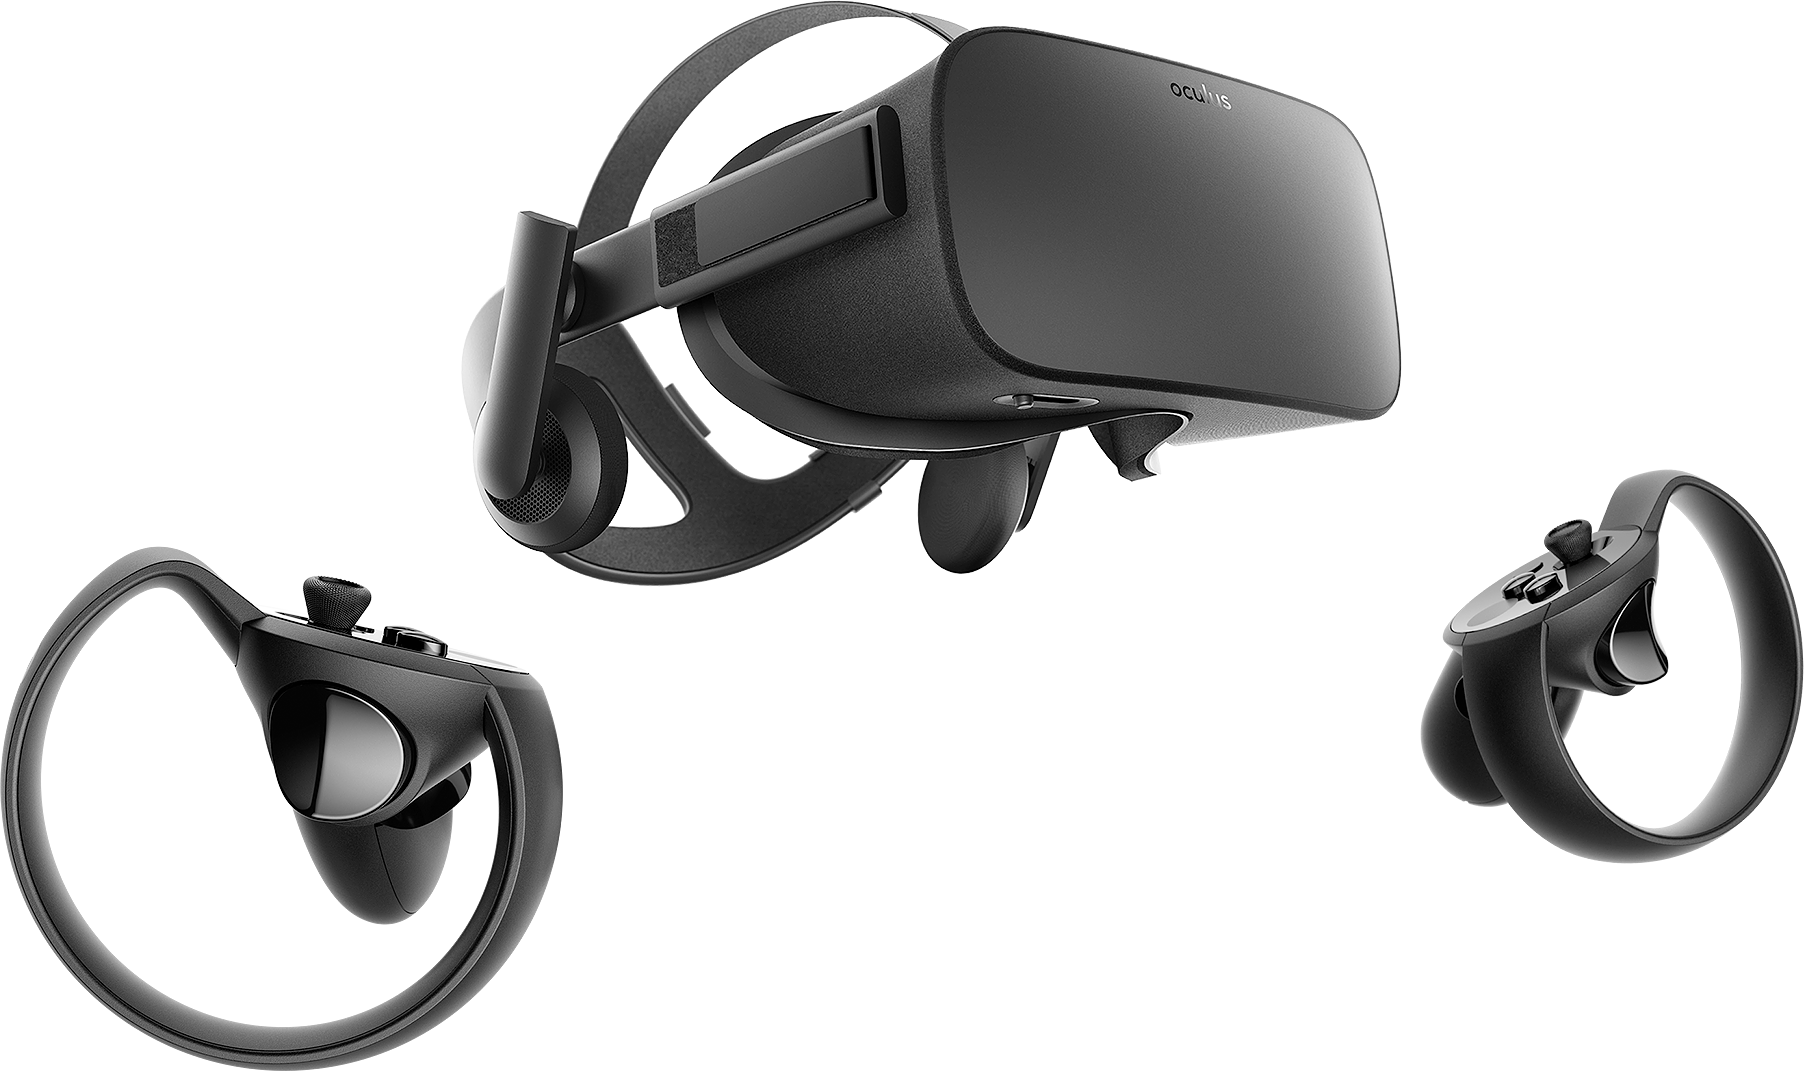 Headset Htc Rift Oculus Virtual Reality Vr PNG Image